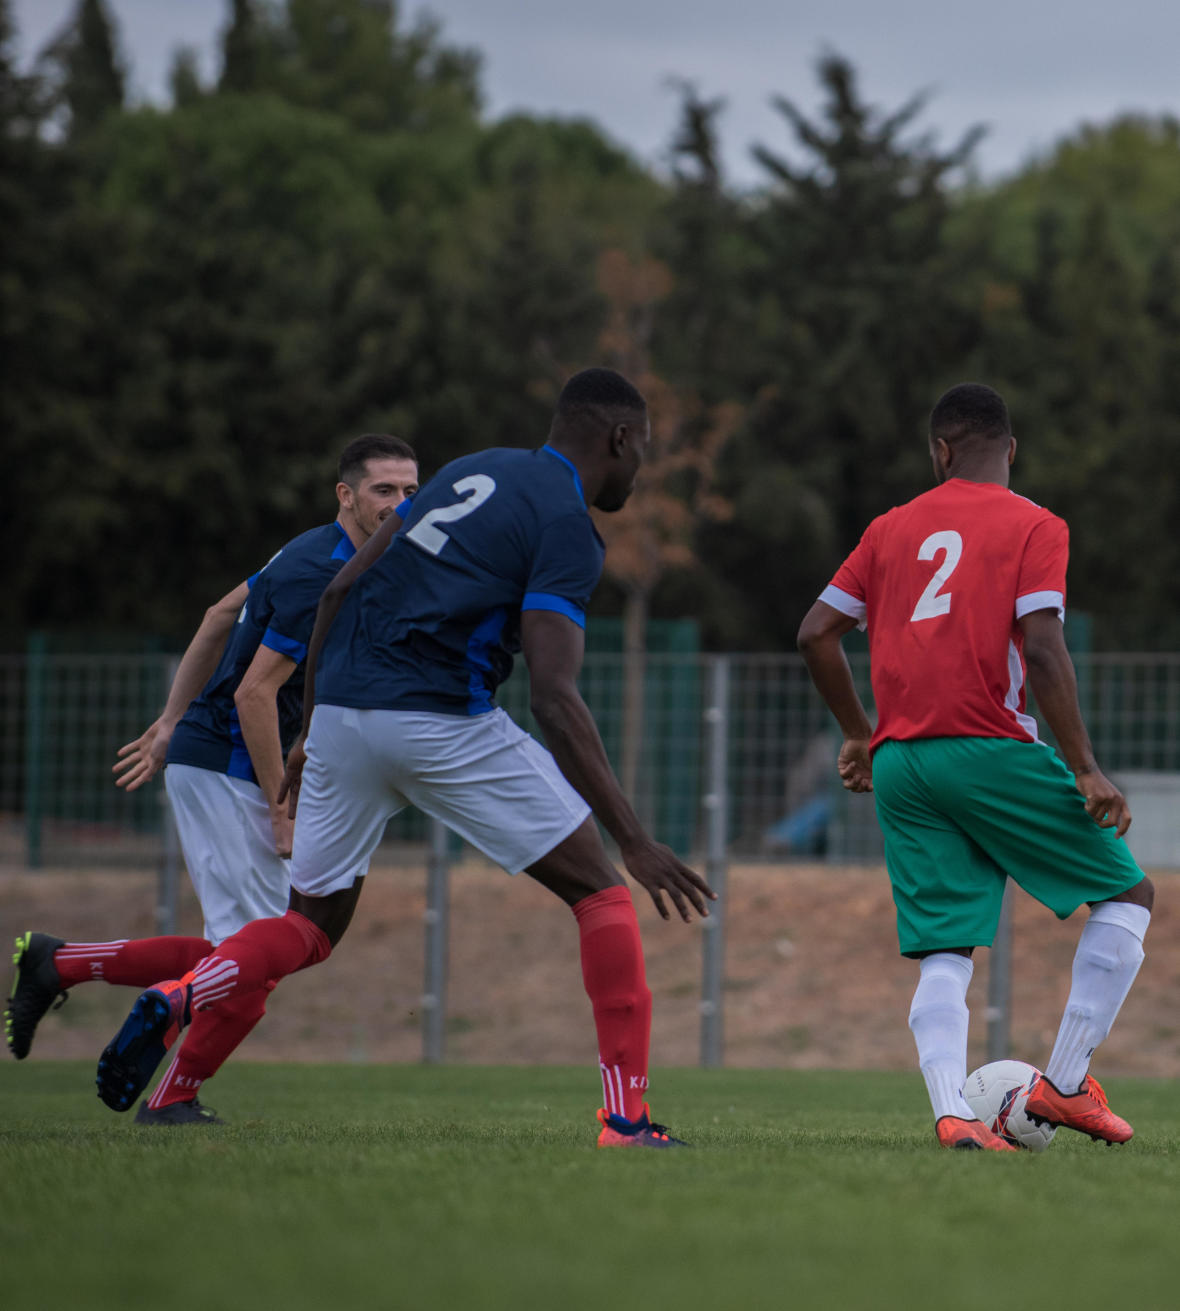 Prise-d'information-football